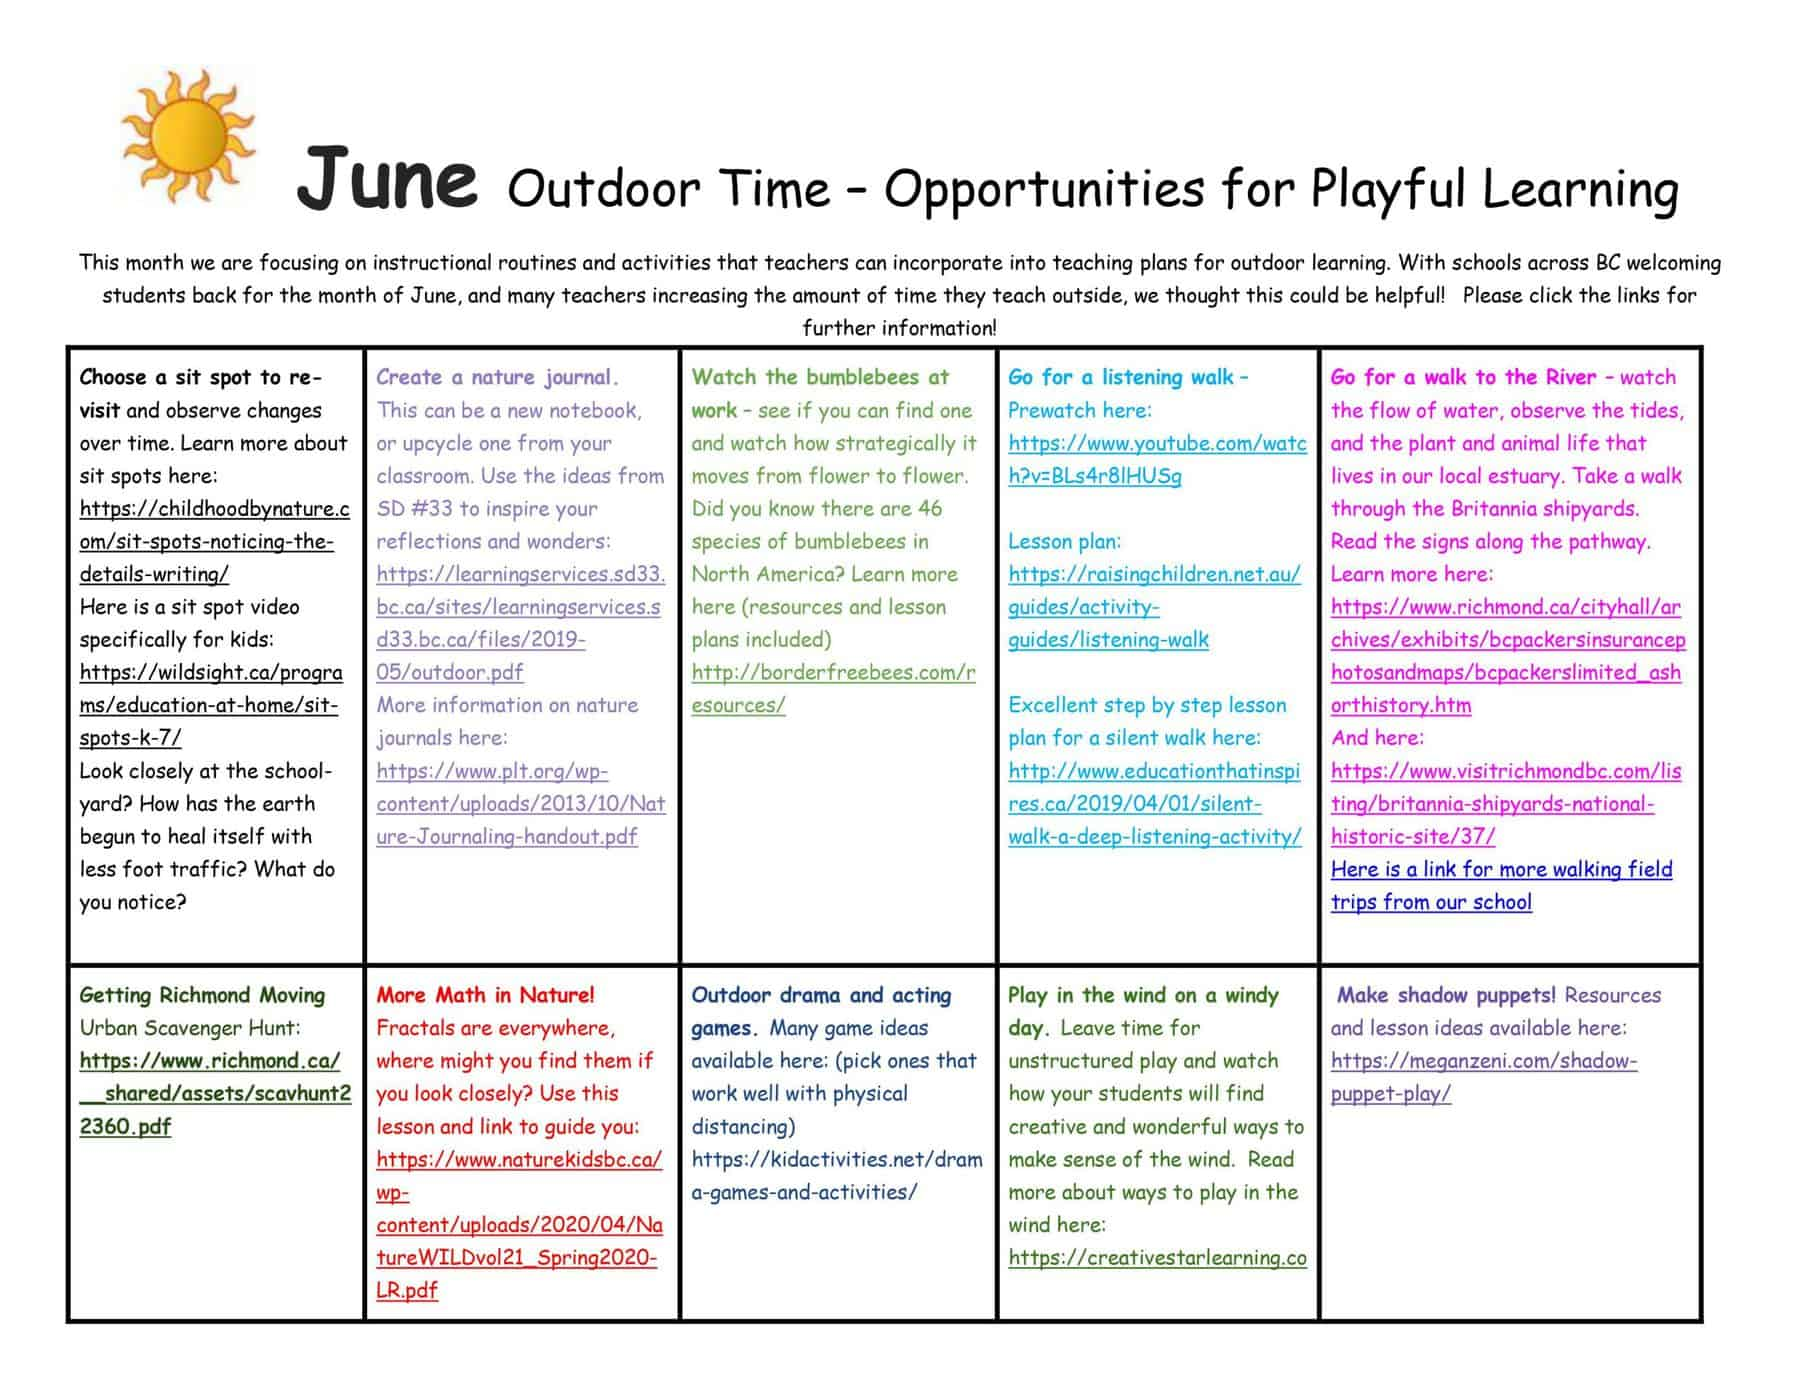 playful learning outdoors in June